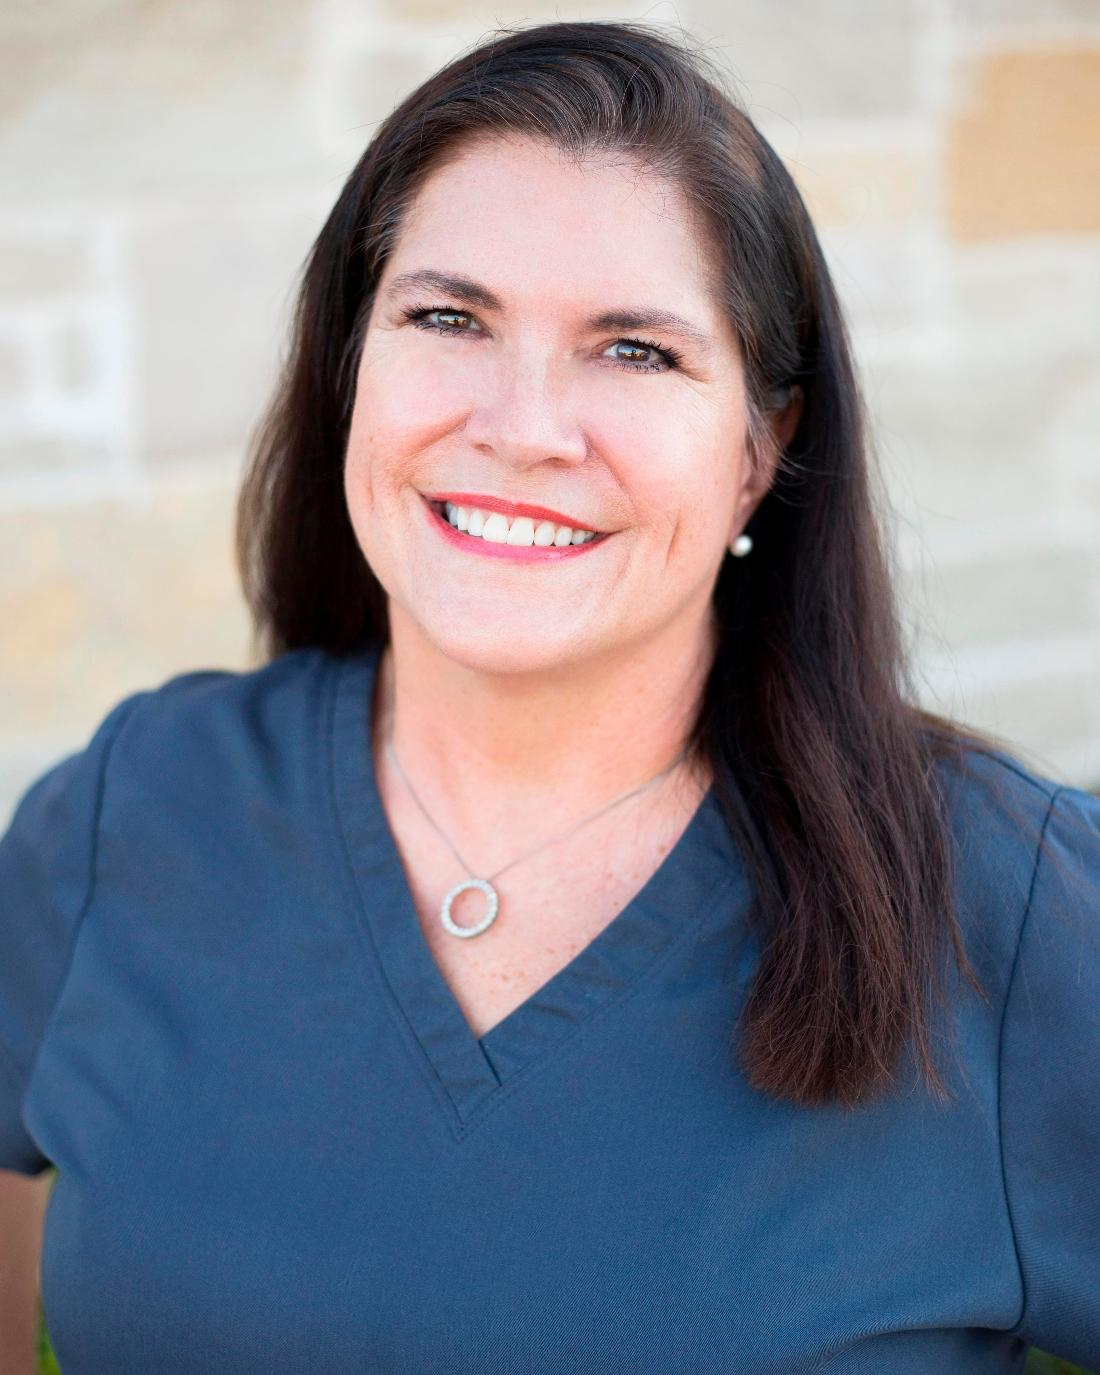 Glenda - Registered Dental Hygienist